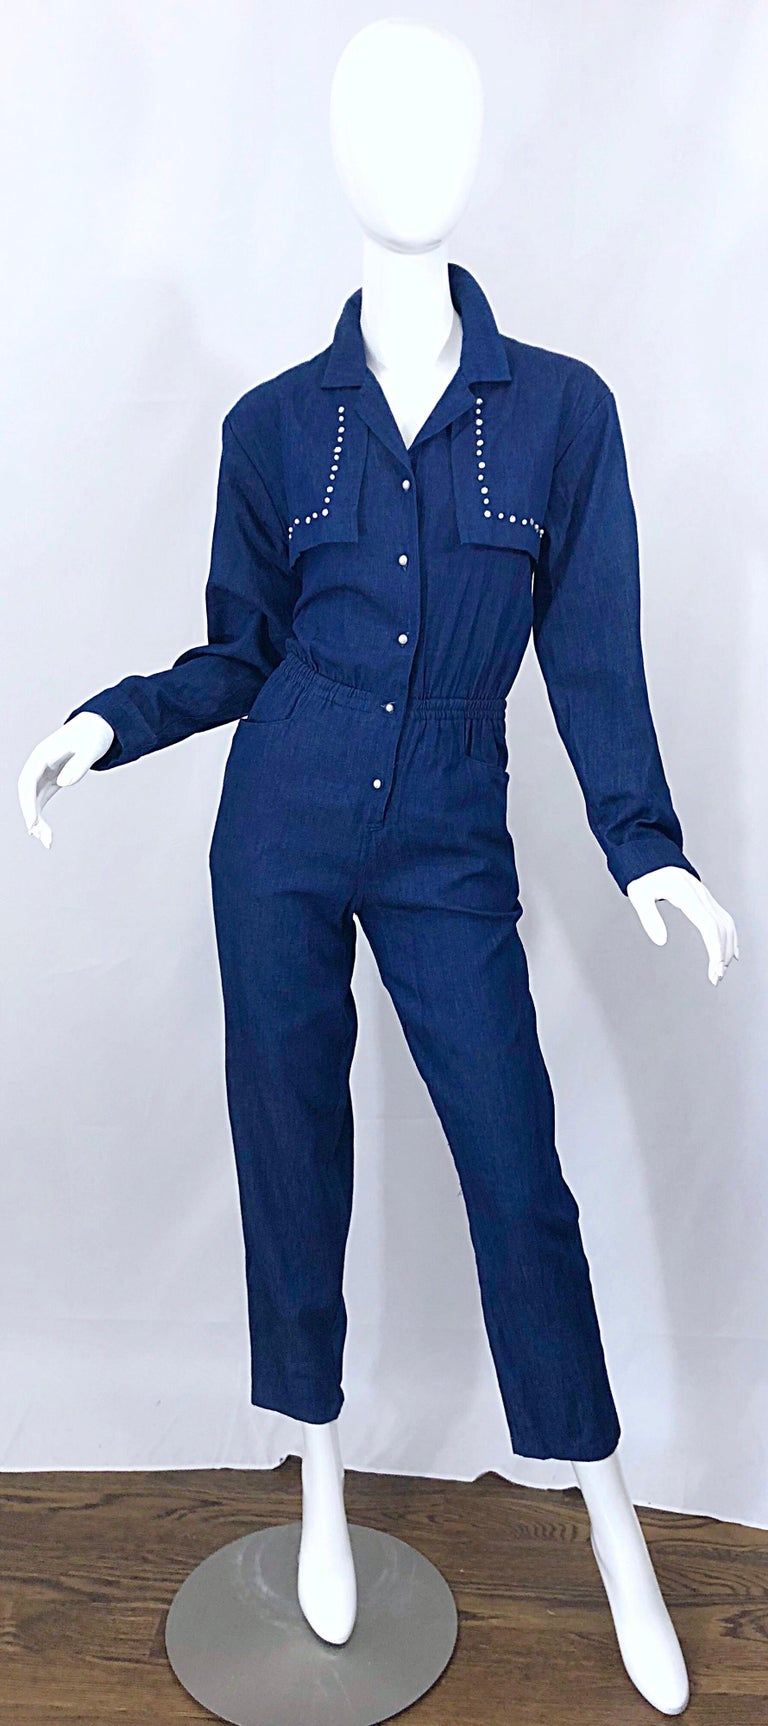 Amazing 90s French Designer (Miss Jett) dark blue denim jean one piece jumpsuit! Encrusted with rhinestones and pearls hand-sewn on the chest lapels, with pearl buttons up the front. Smart tailored bodice with a forgiving elastic waistband. POCKETS